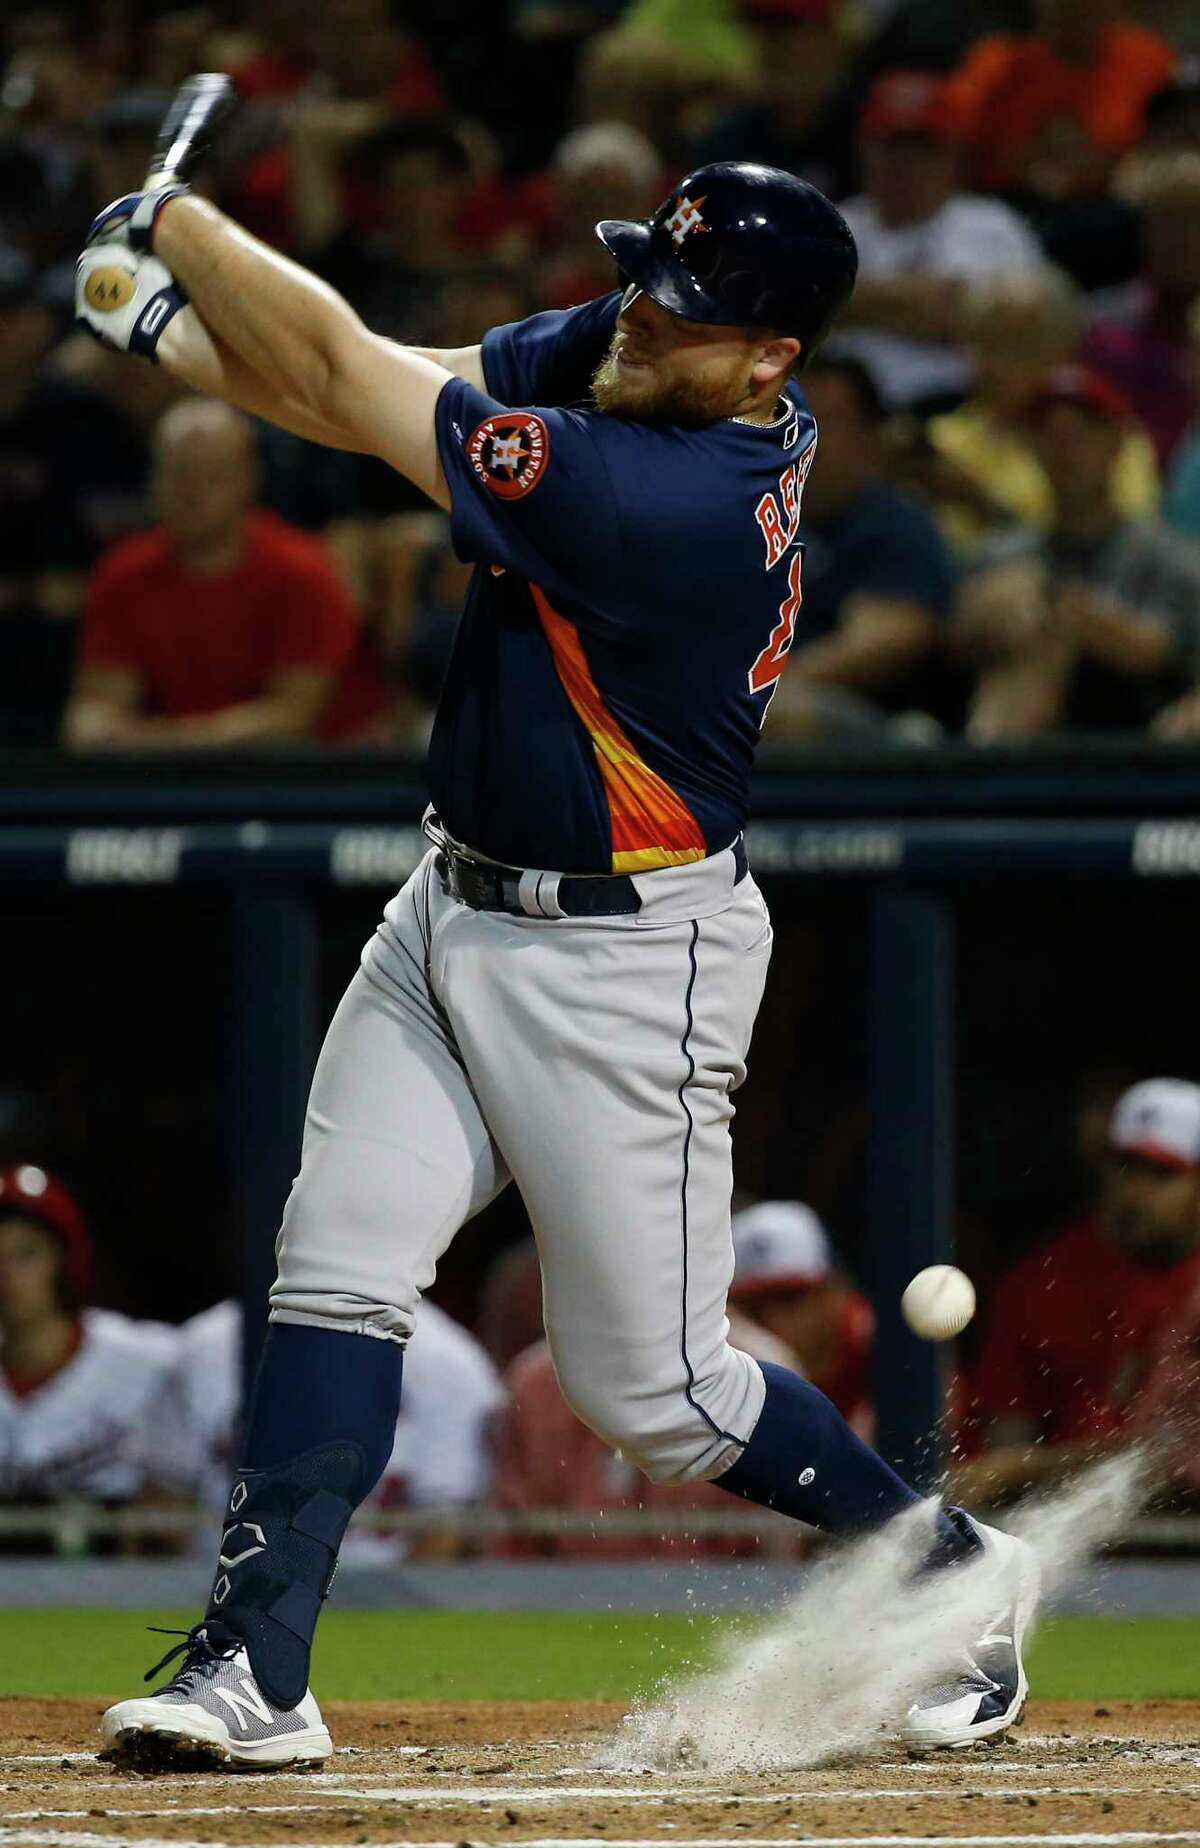 Houston Astros infielder A.J. Reed (44 ) at bat during the top second inning of the Houston Astros-Washington Nationals spring training opening game at Fitteam Ballpark of The Palm Beaches on Saturday, Feb. 23, 2019, in West Palm Beach.